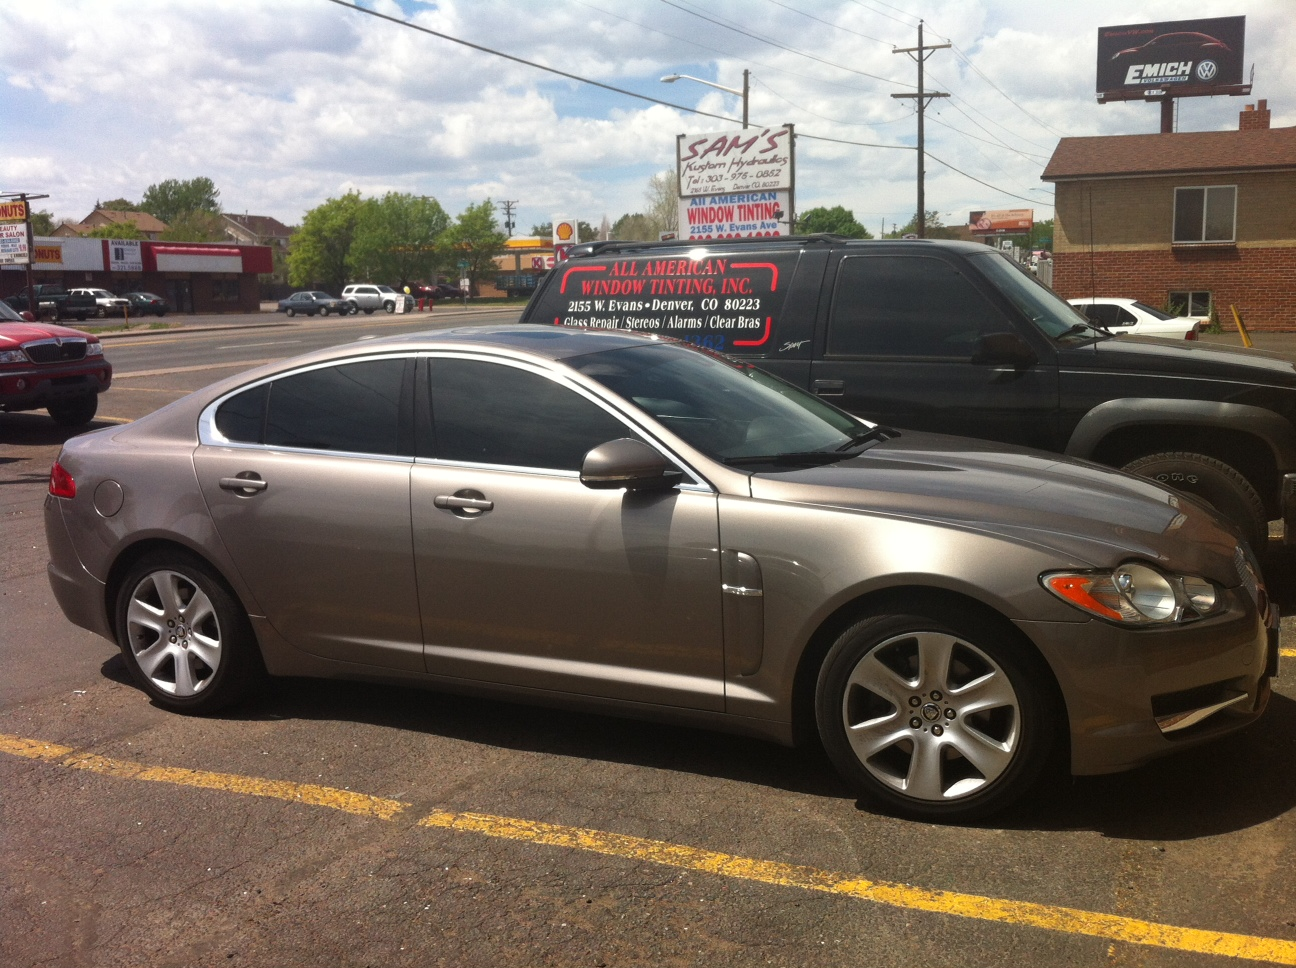 All american window tint window tinting in denver see for Window tinting